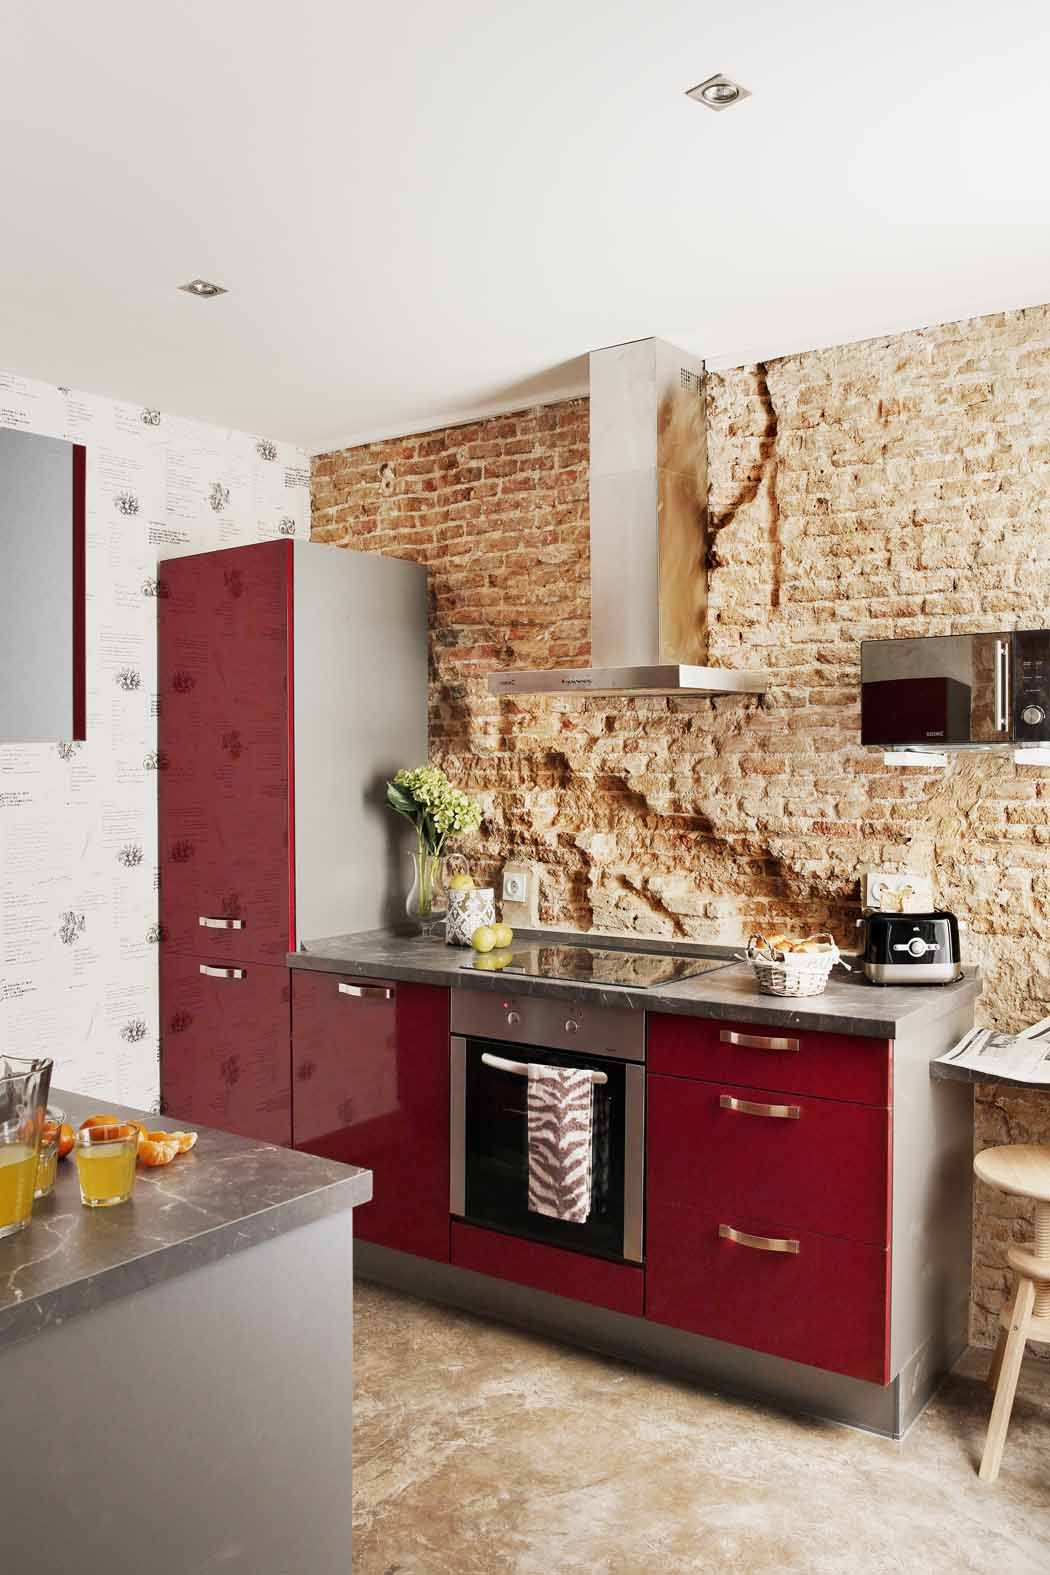 Kitchen exposed bricks cocina con ladrillos a la vista - Ladrillos para cocinas ...